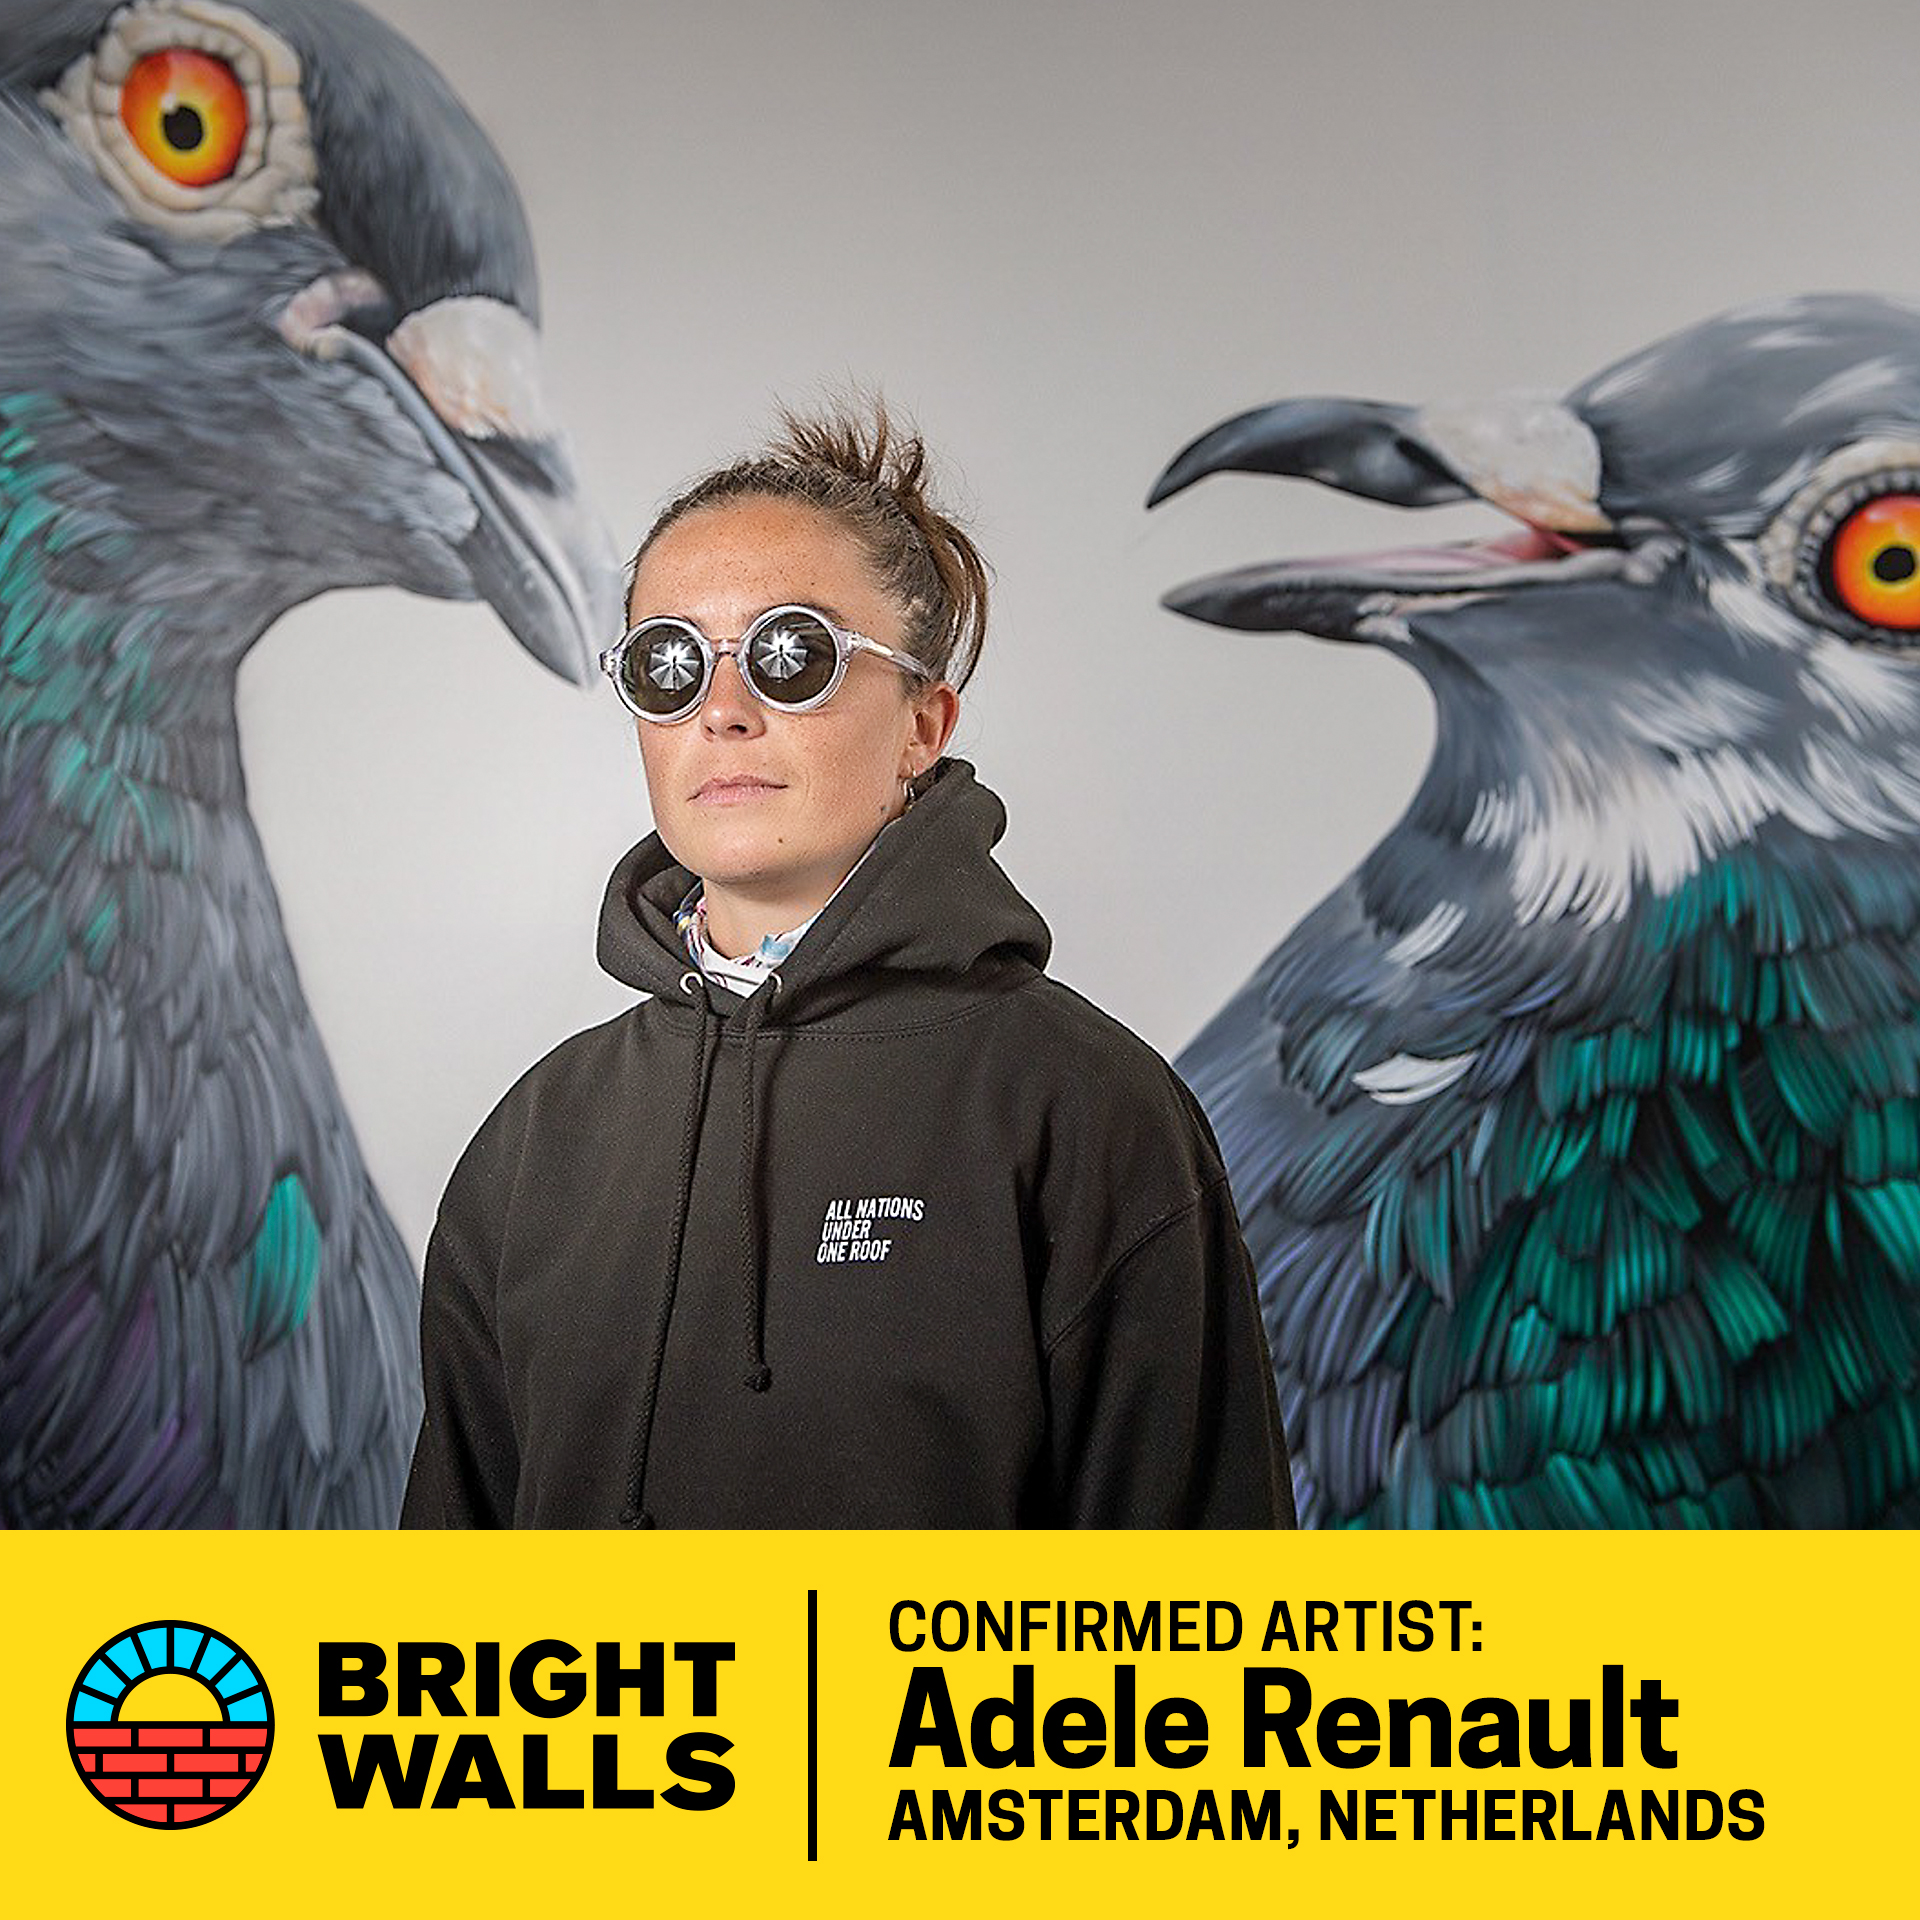 Adele RenaultAmsterdam, Netherlands - Adele Renault paints realistic portraits of pigeons and people. Her subject matter may live in the gutter or in an ivory tower and the size of her work ranges from small canvas to giant mural.Renault grew up in a musical family on a farm in the Belgian Ardennes. At age 14 she traveled abroad alone; lived in Venezuela on an exchange, then two years in Brighton, England. She studied and practiced visual arts, from classical oil painting to modern-day spray can graffiti. In 2010 she graduated from the Academie Royale des Beaux Arts in Brussels with a degree in Graphic Design.She has done work for Facebook, Staple Pigeon, Tretorn and Rock Werchter Festival.